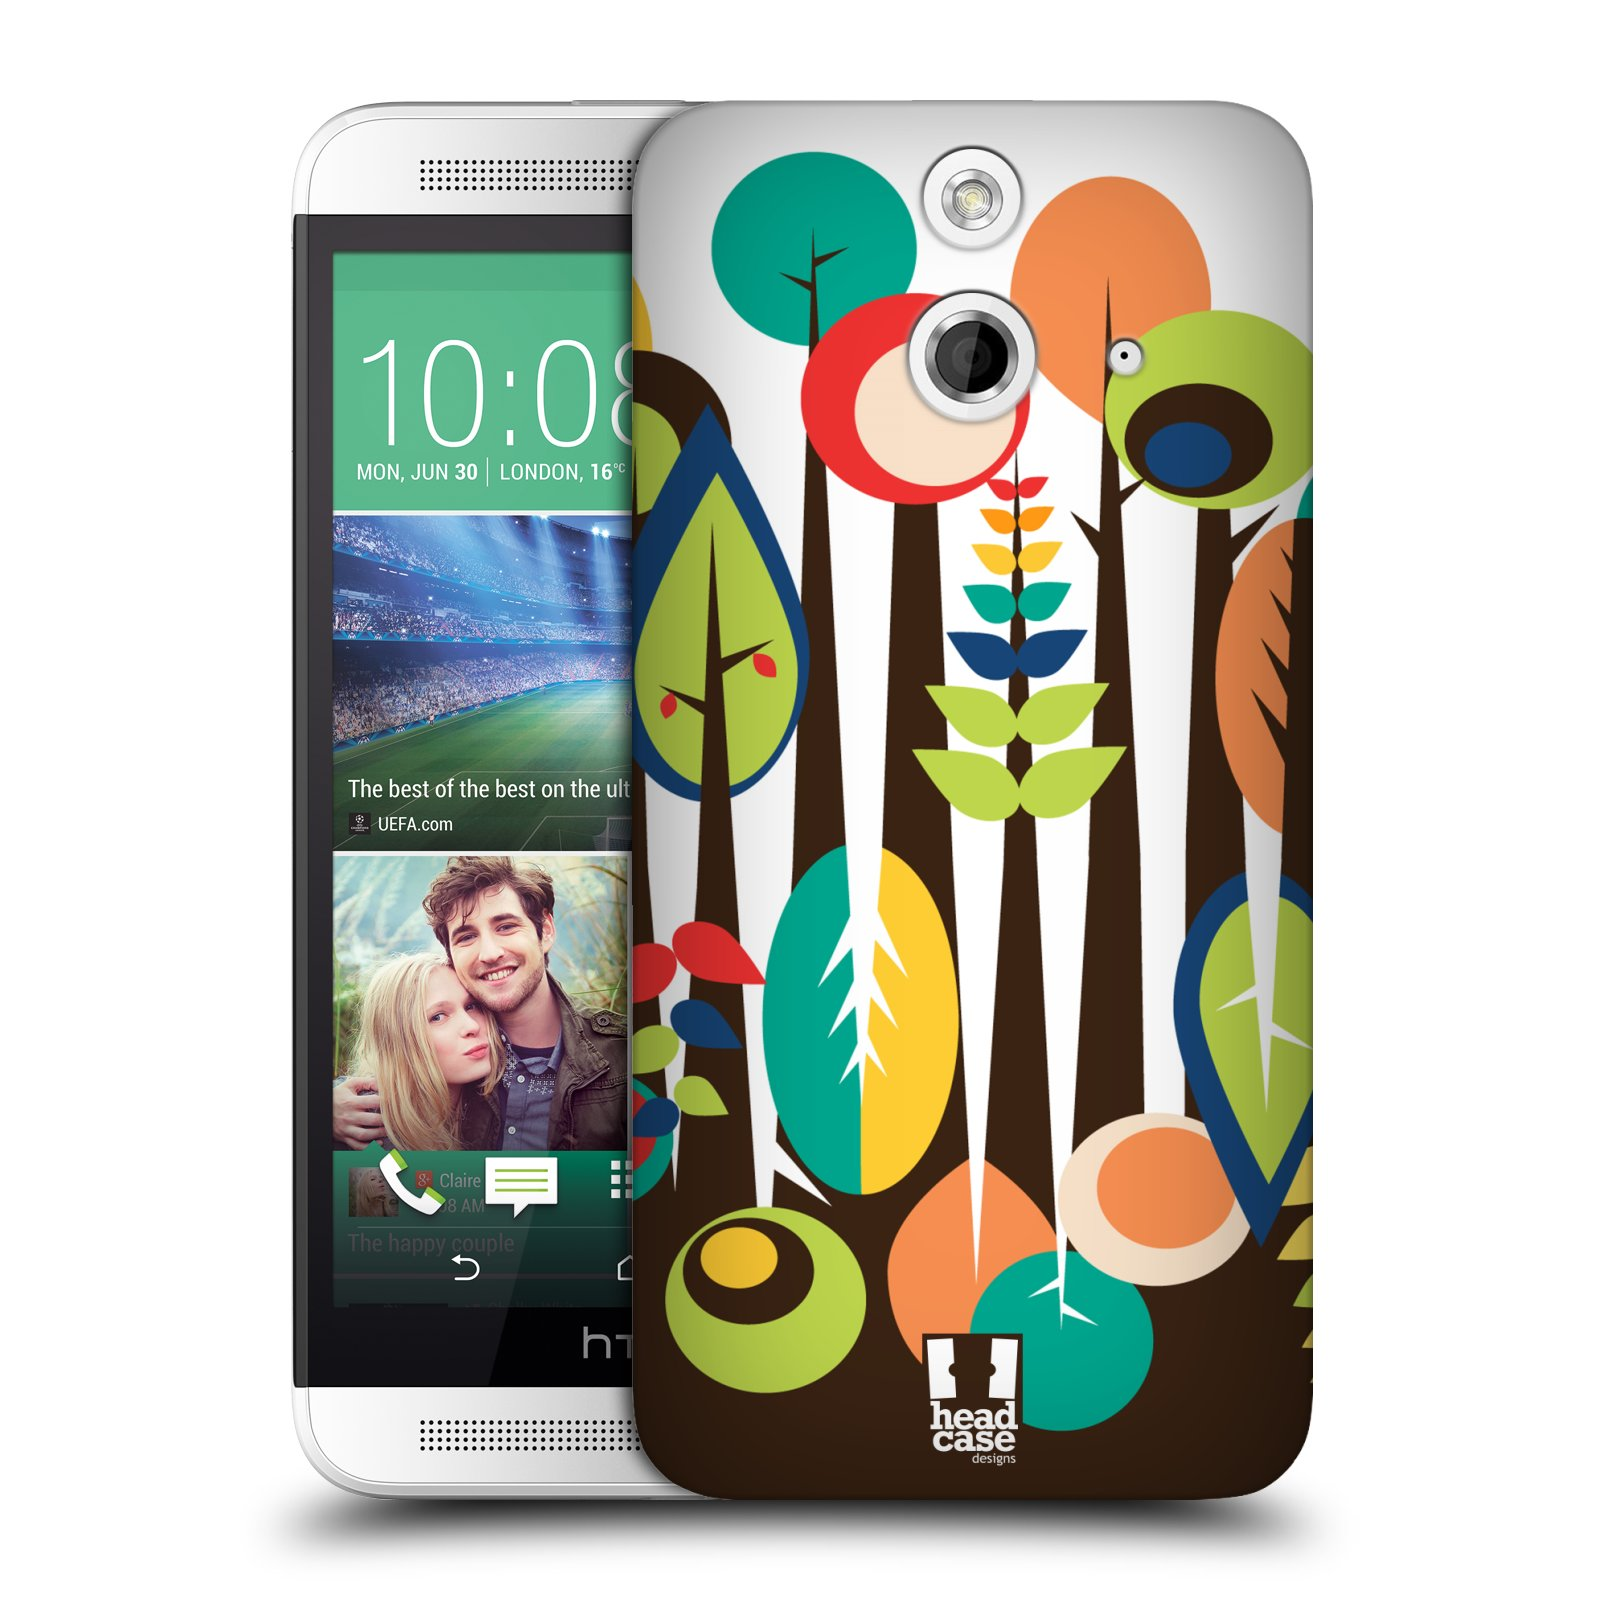 HEAD CASE DESIGNS UPSIDE DOWN HARD BACK CASE FOR HTC ONE E8 LTE